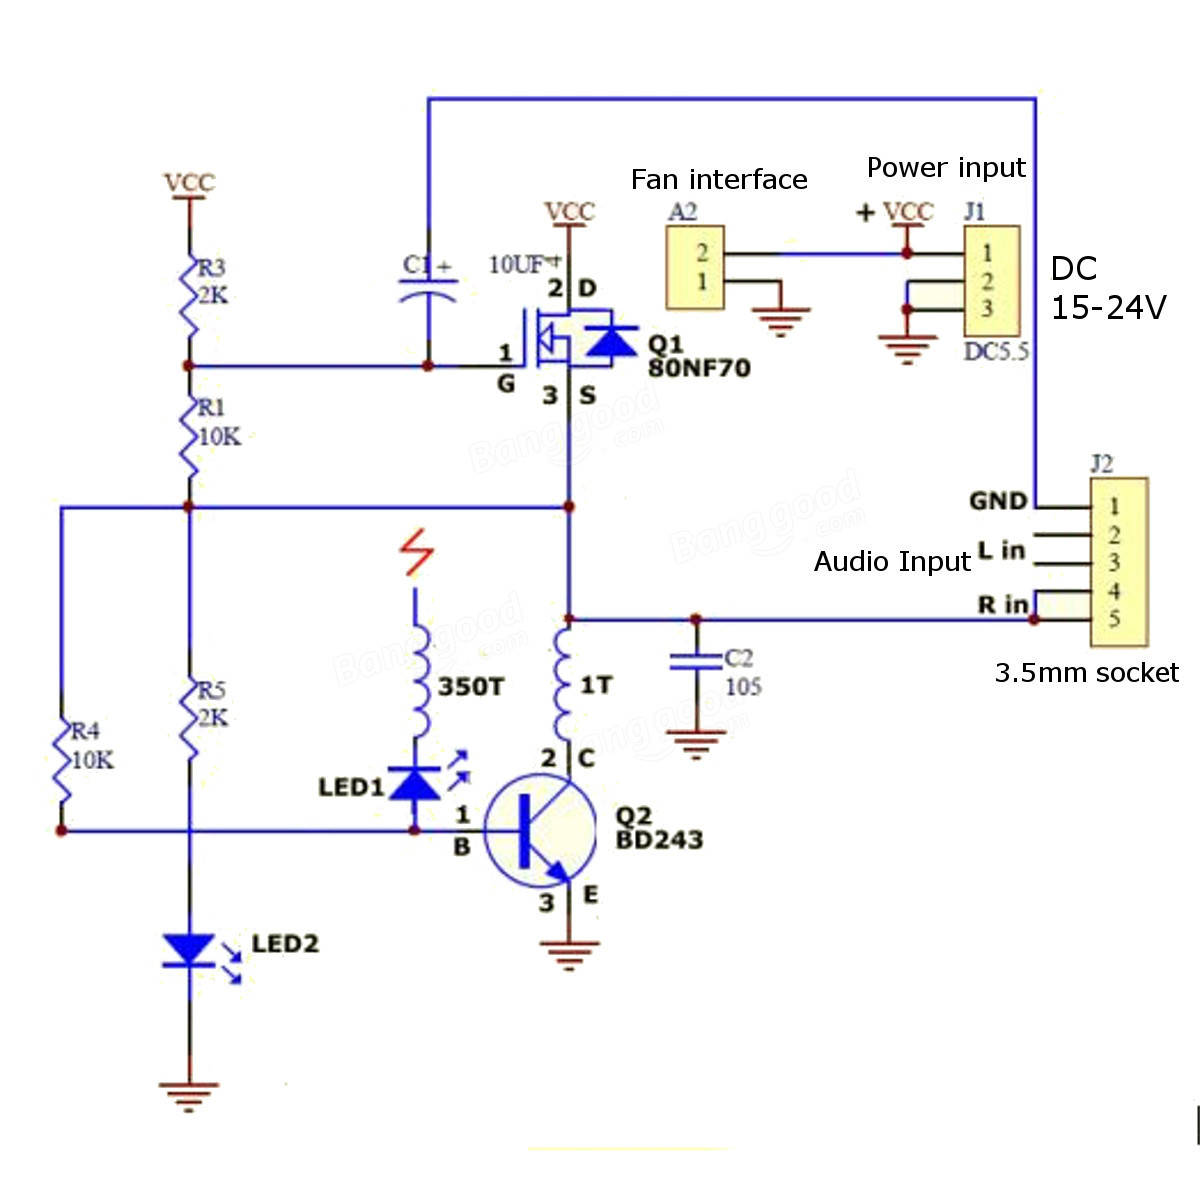 transistor ignition schematic wiring diagram electricity basics rh vehiclewiring today Ignition Switch Wiring Diagram Points Ignition Wiring Diagram